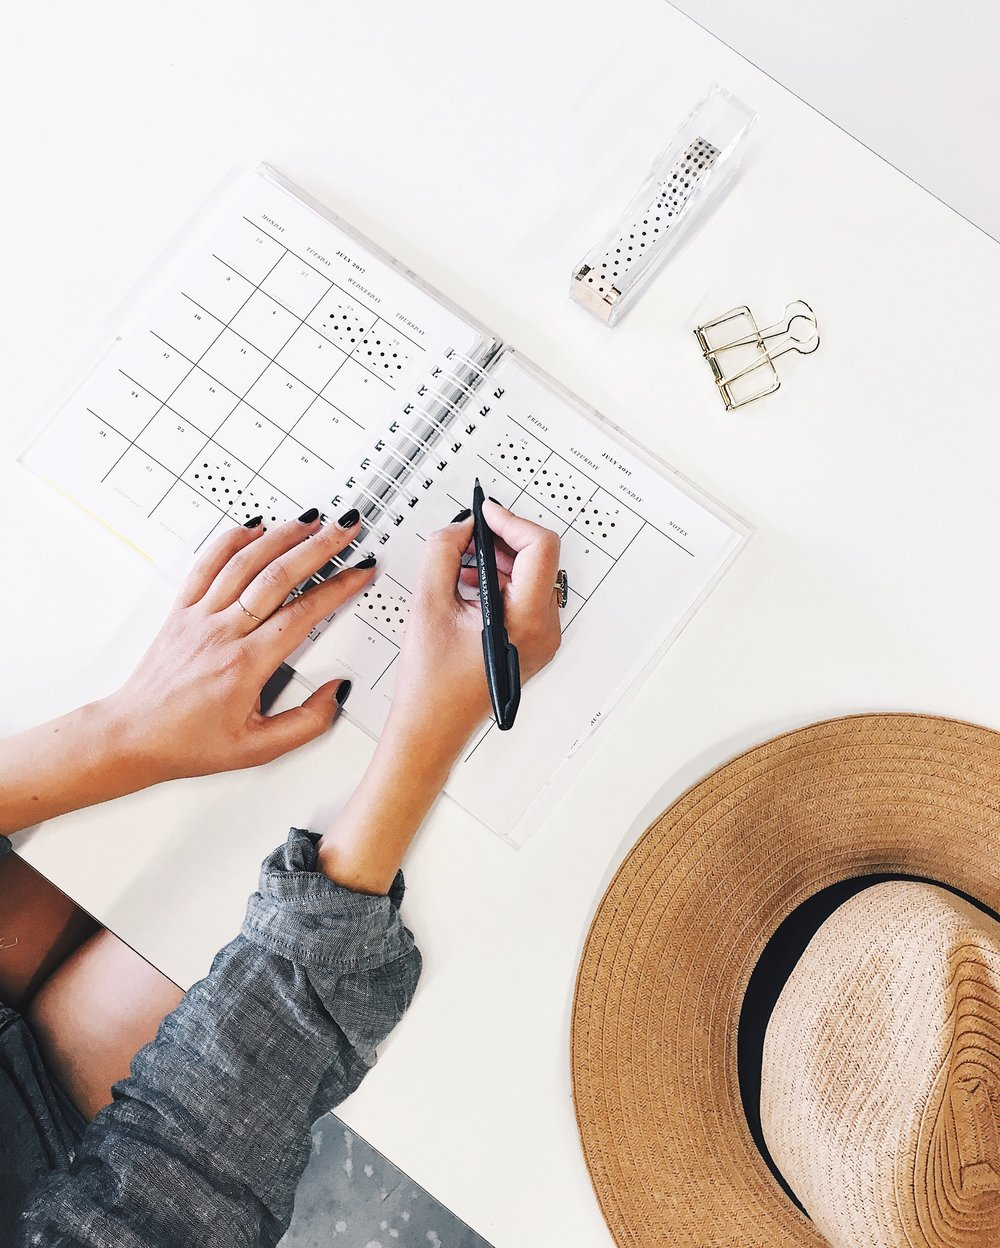 How to start a fashion brand | consulting package to learn how to start a clothing business